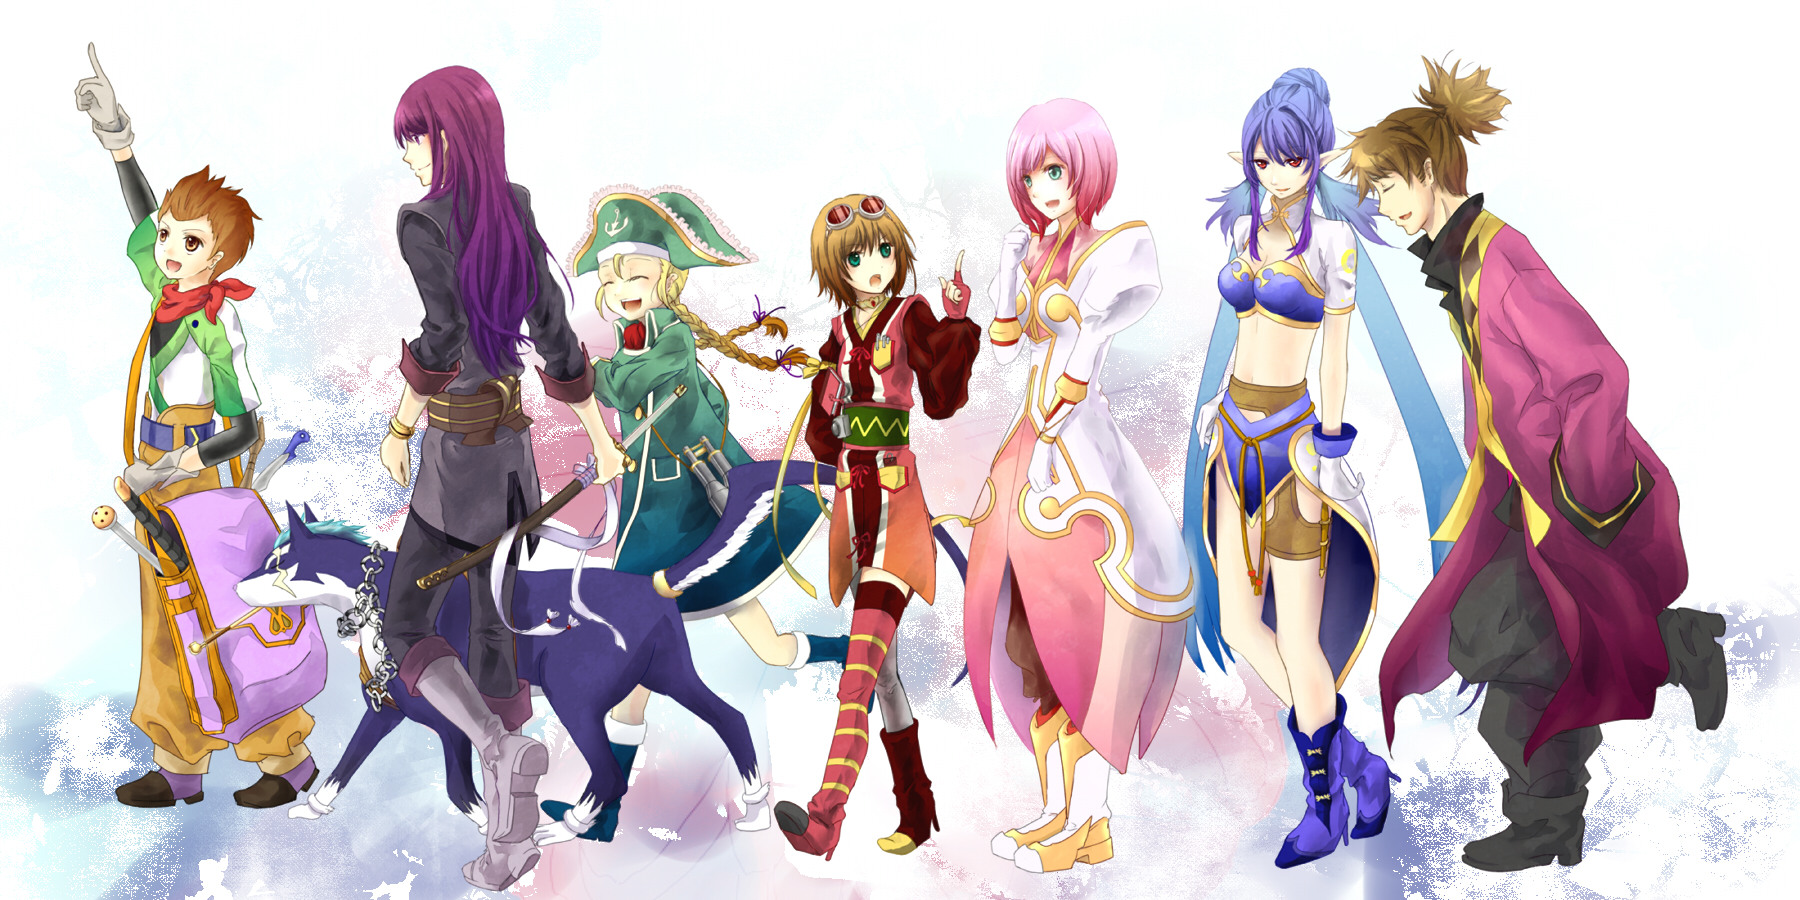 trend now a days Today here I am sharing the best Tales of Vesperia 1800x900